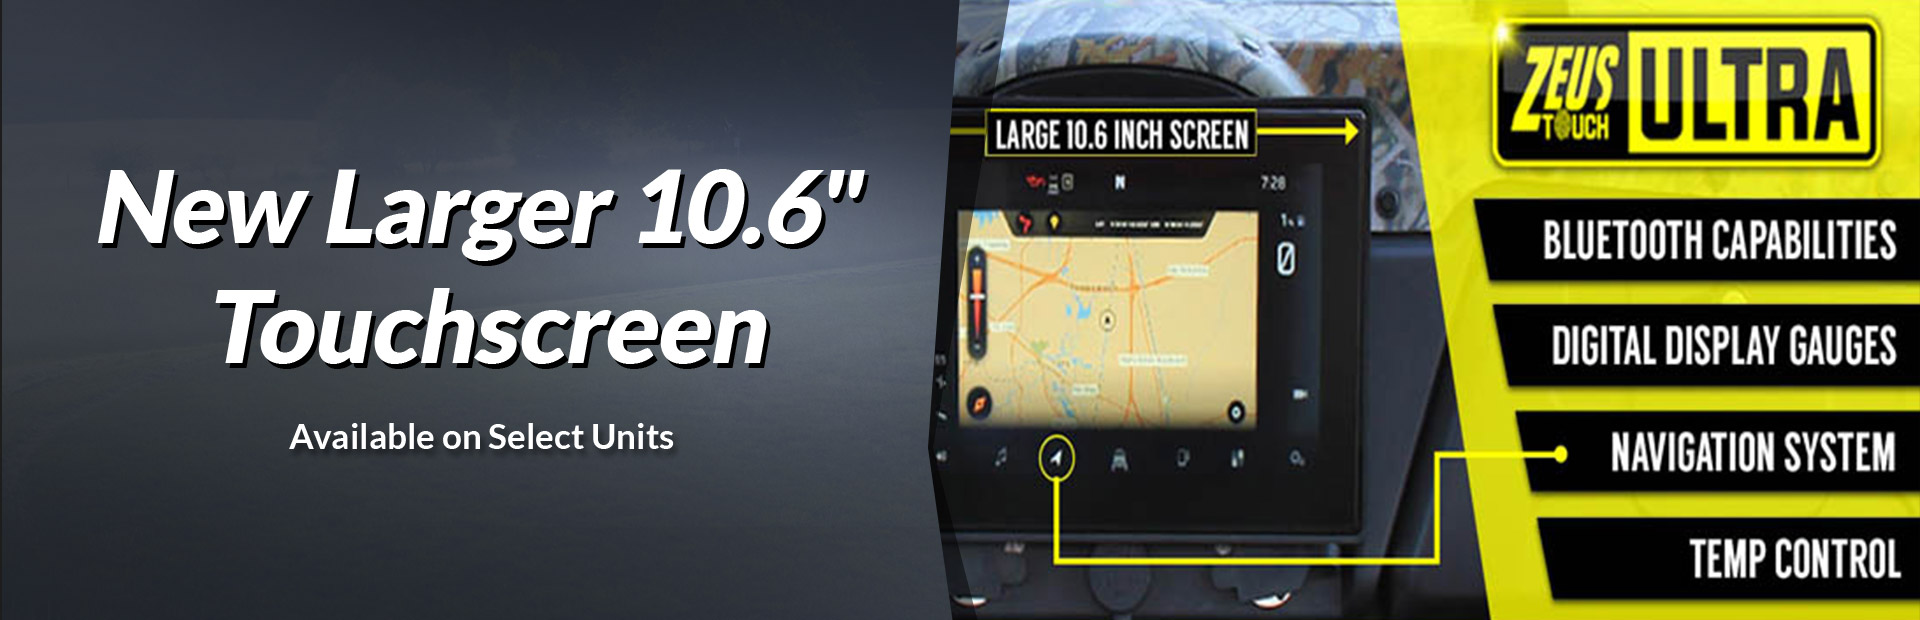 New larger 10.6'' touchscreen available on select units. Click here to view the models.